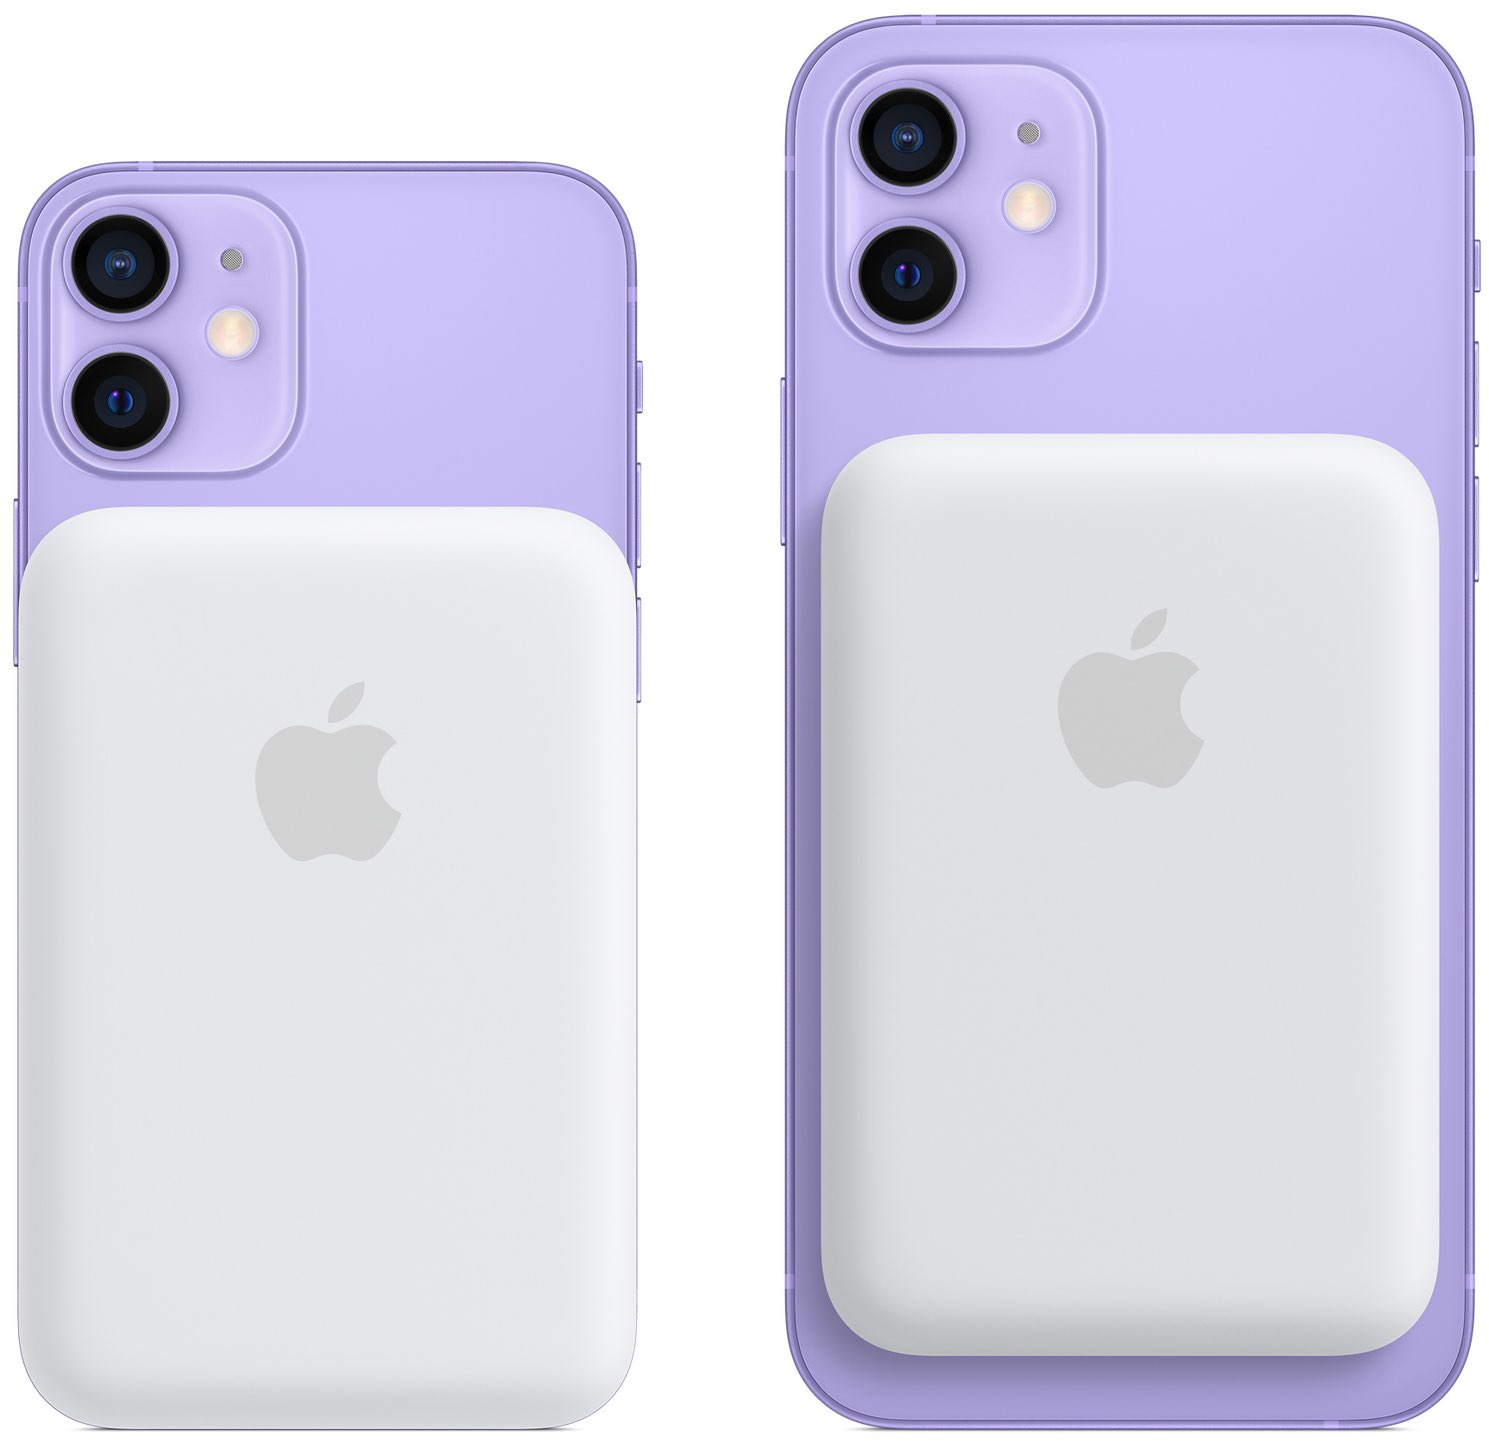 Promotional graphics showing the back of iPhone 12 mini and iPhone 12 in purple with Apple MagSafe Battery Pack attached magnetically on the back